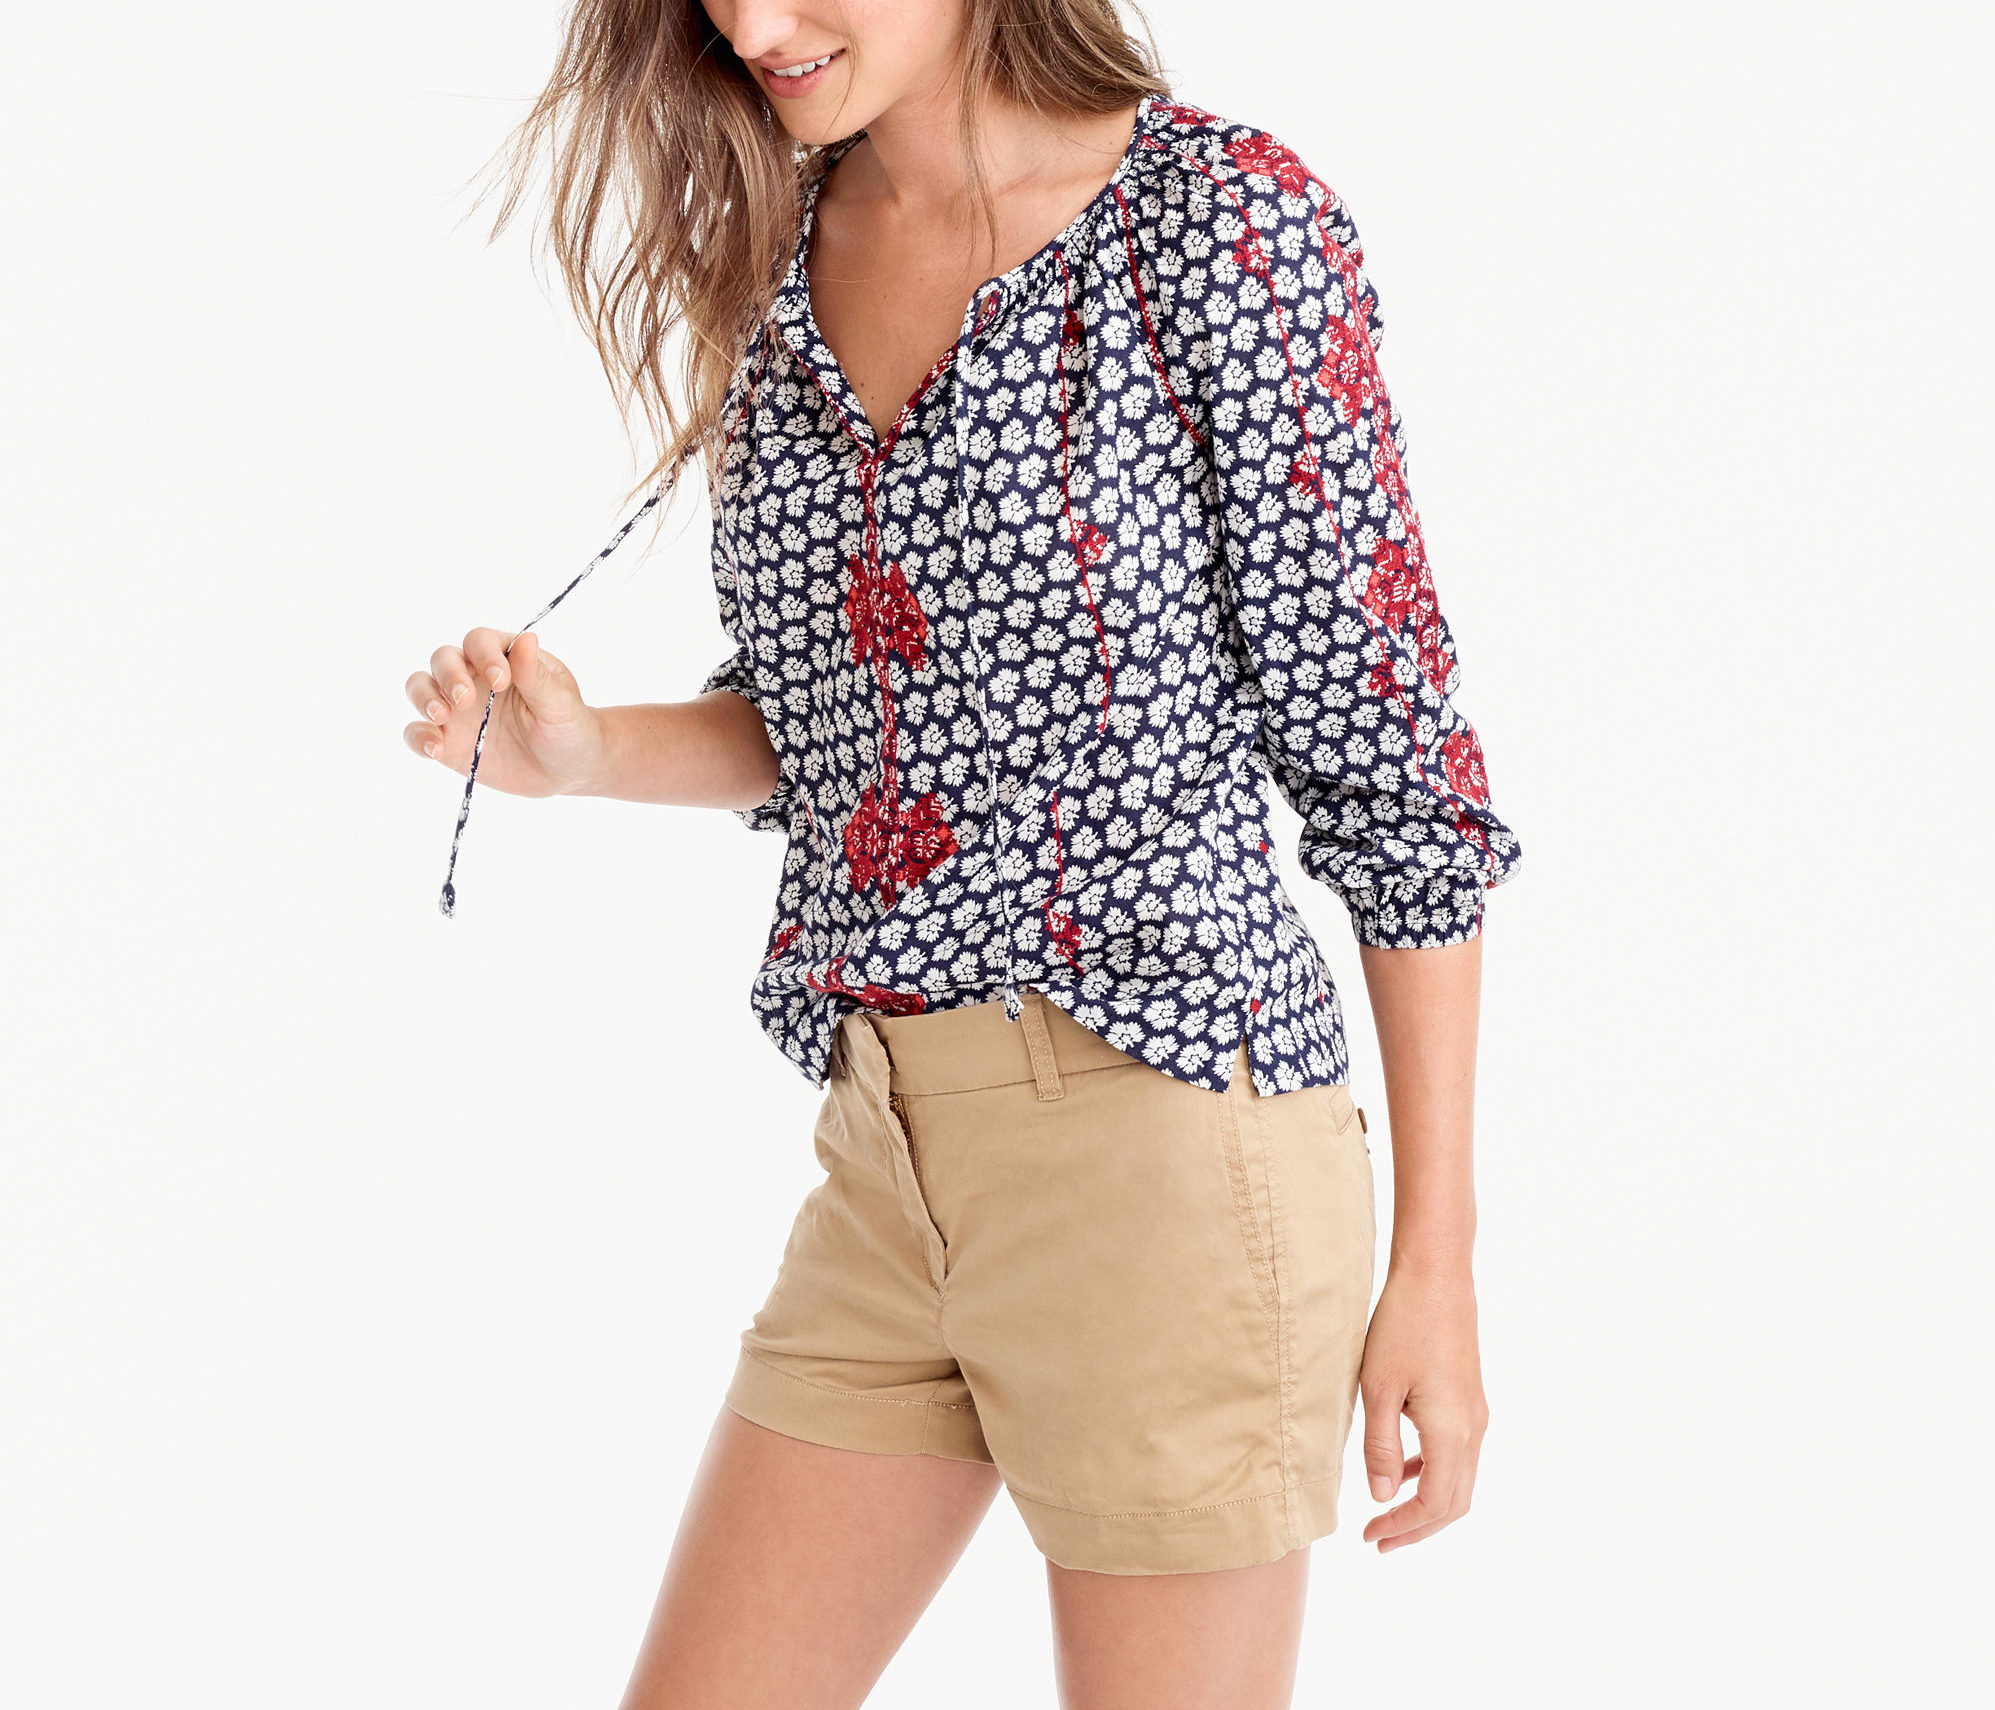 J Crew embroidered top—Top 5 of the week